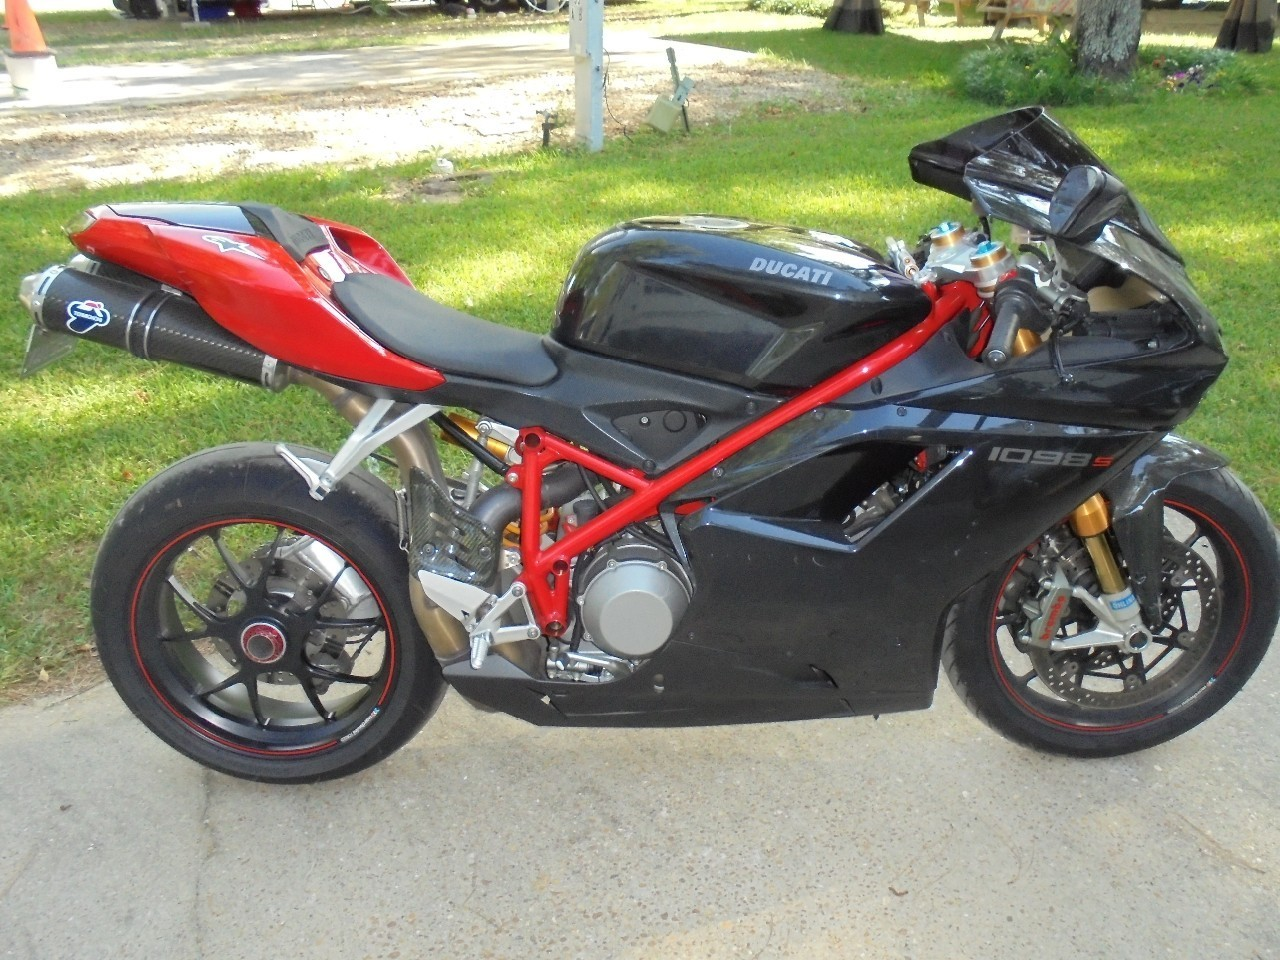 2008 Ducati Superbike 1098 S, motorcycle listing